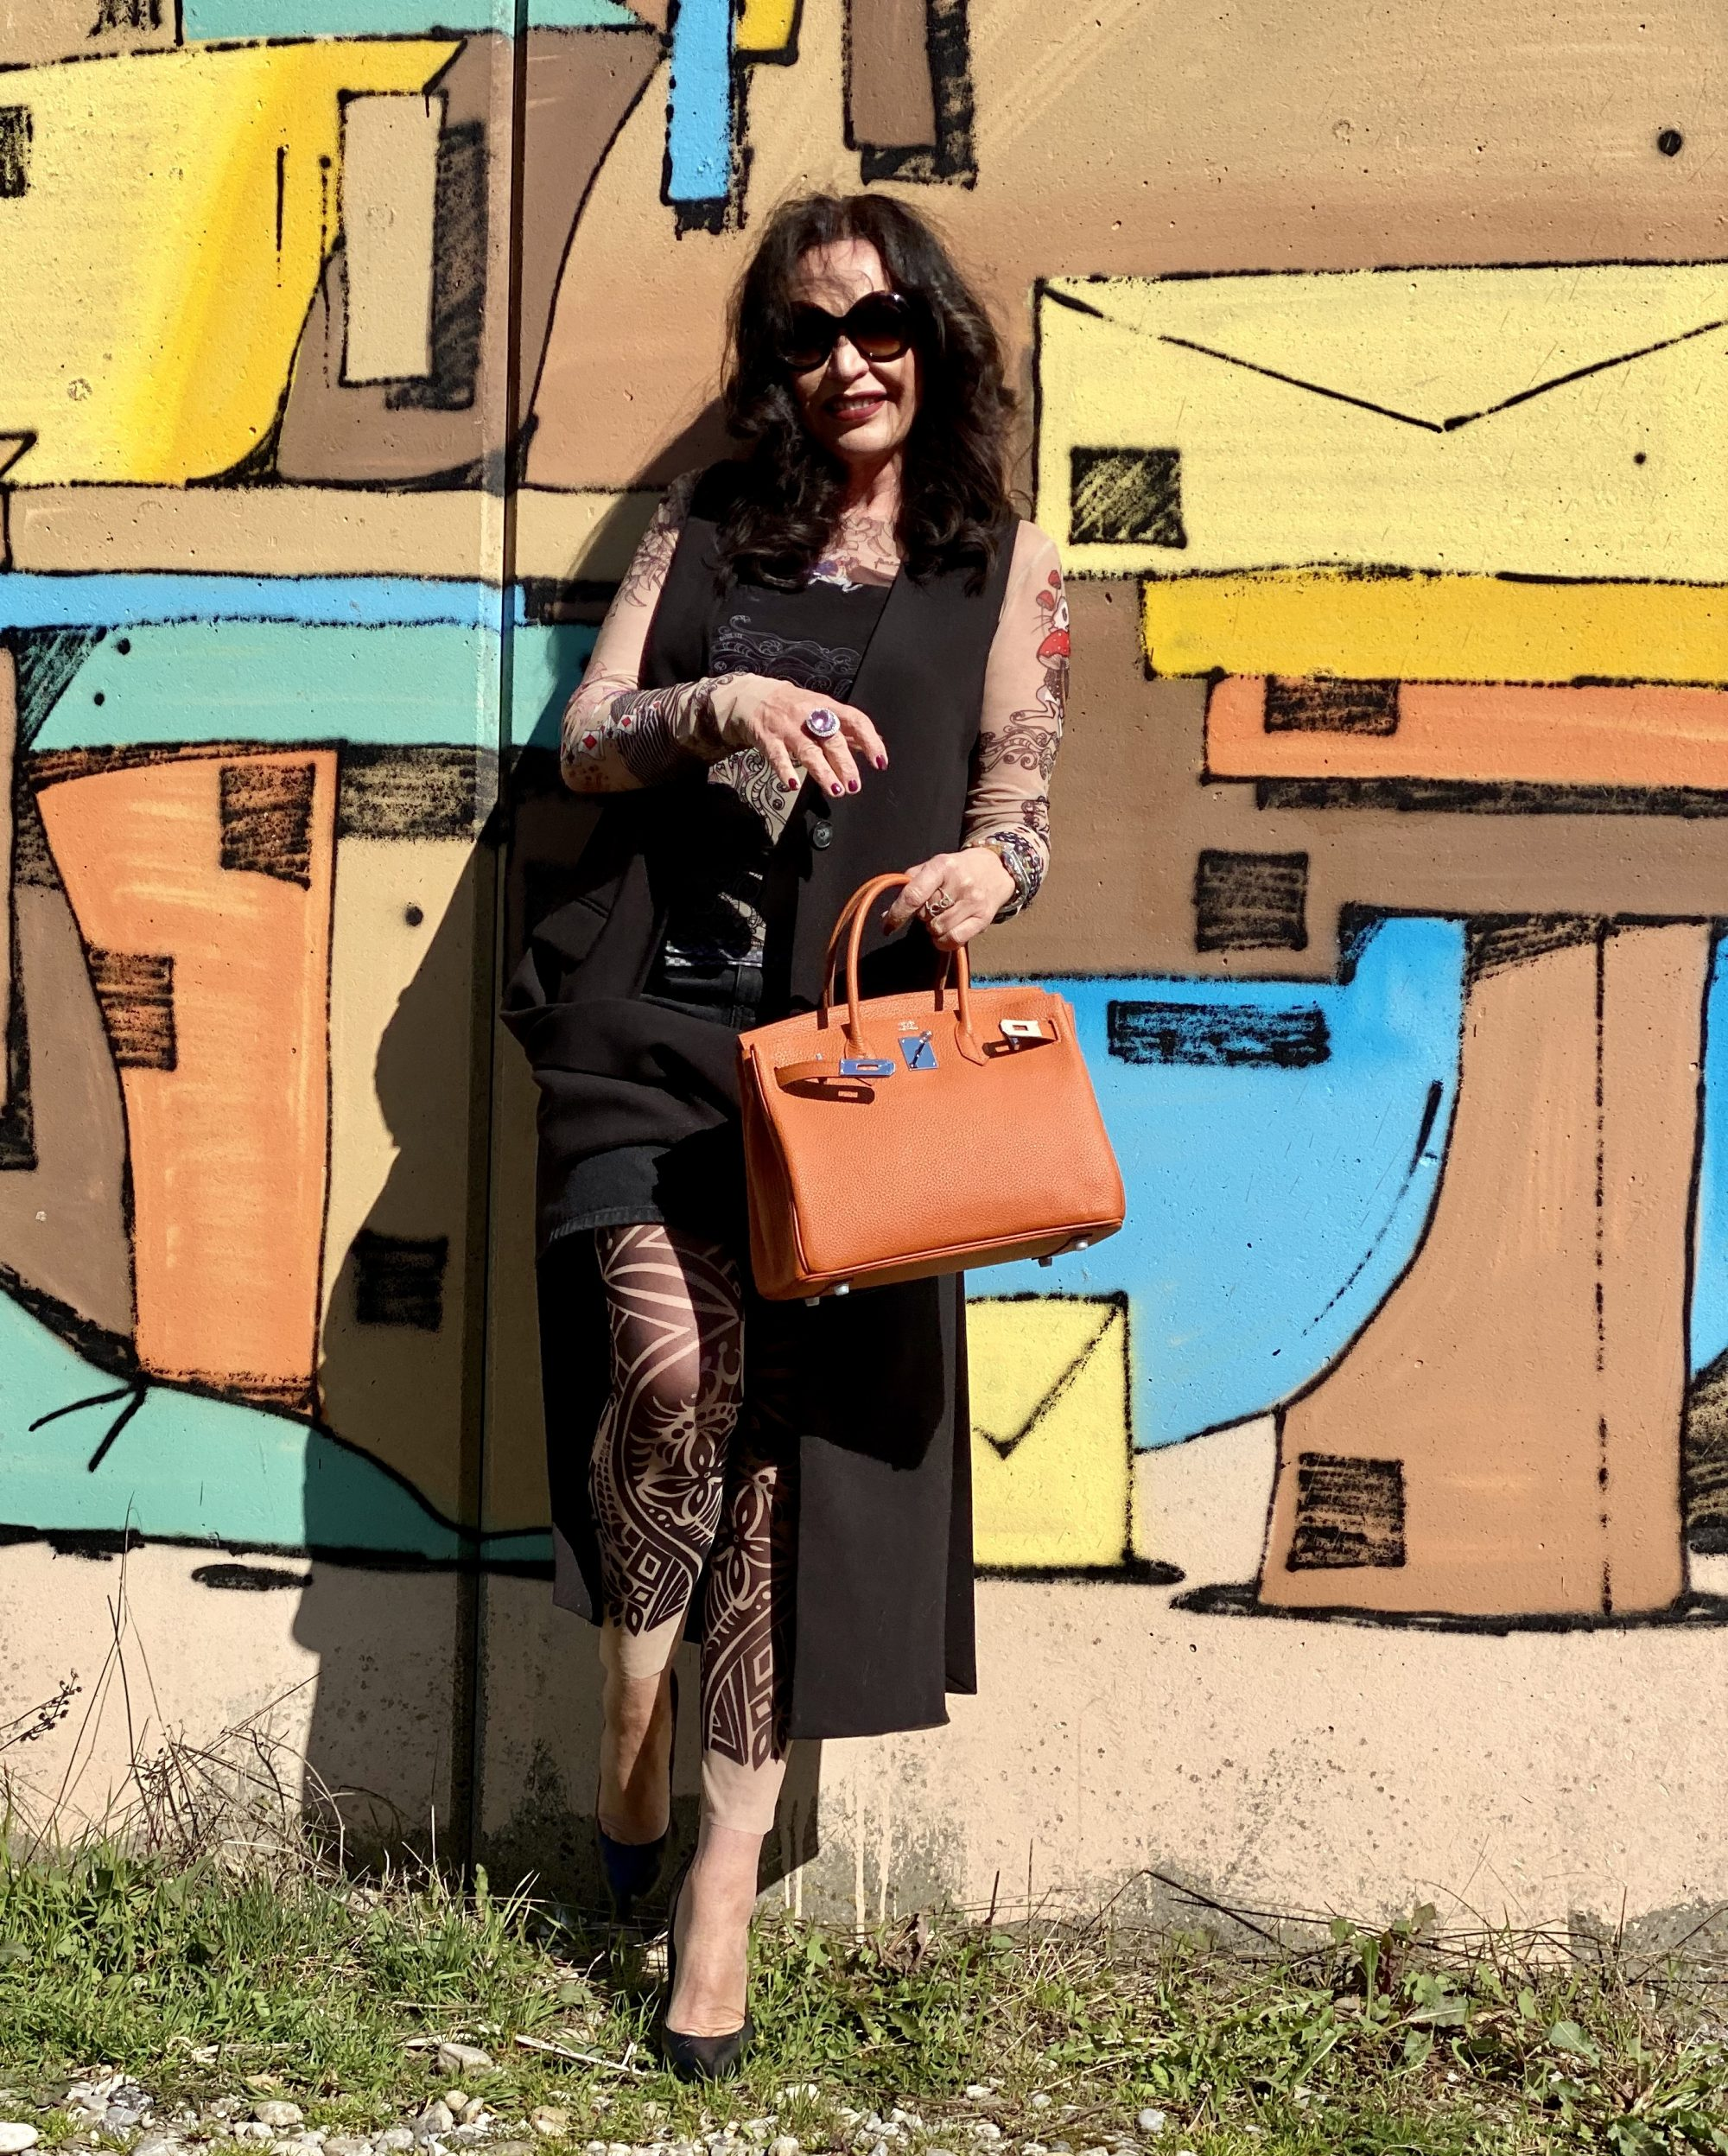 RO Skinwear top and leggings, Rinascimento jacket, Hermés bag, Nine West Shoes, Dolce & Gabbana shades, my style, ageless fashion, streetstyle, spring 2020, trends, fashionblogger, Fashionblog Augsburg, ageless, over50, cochastyle